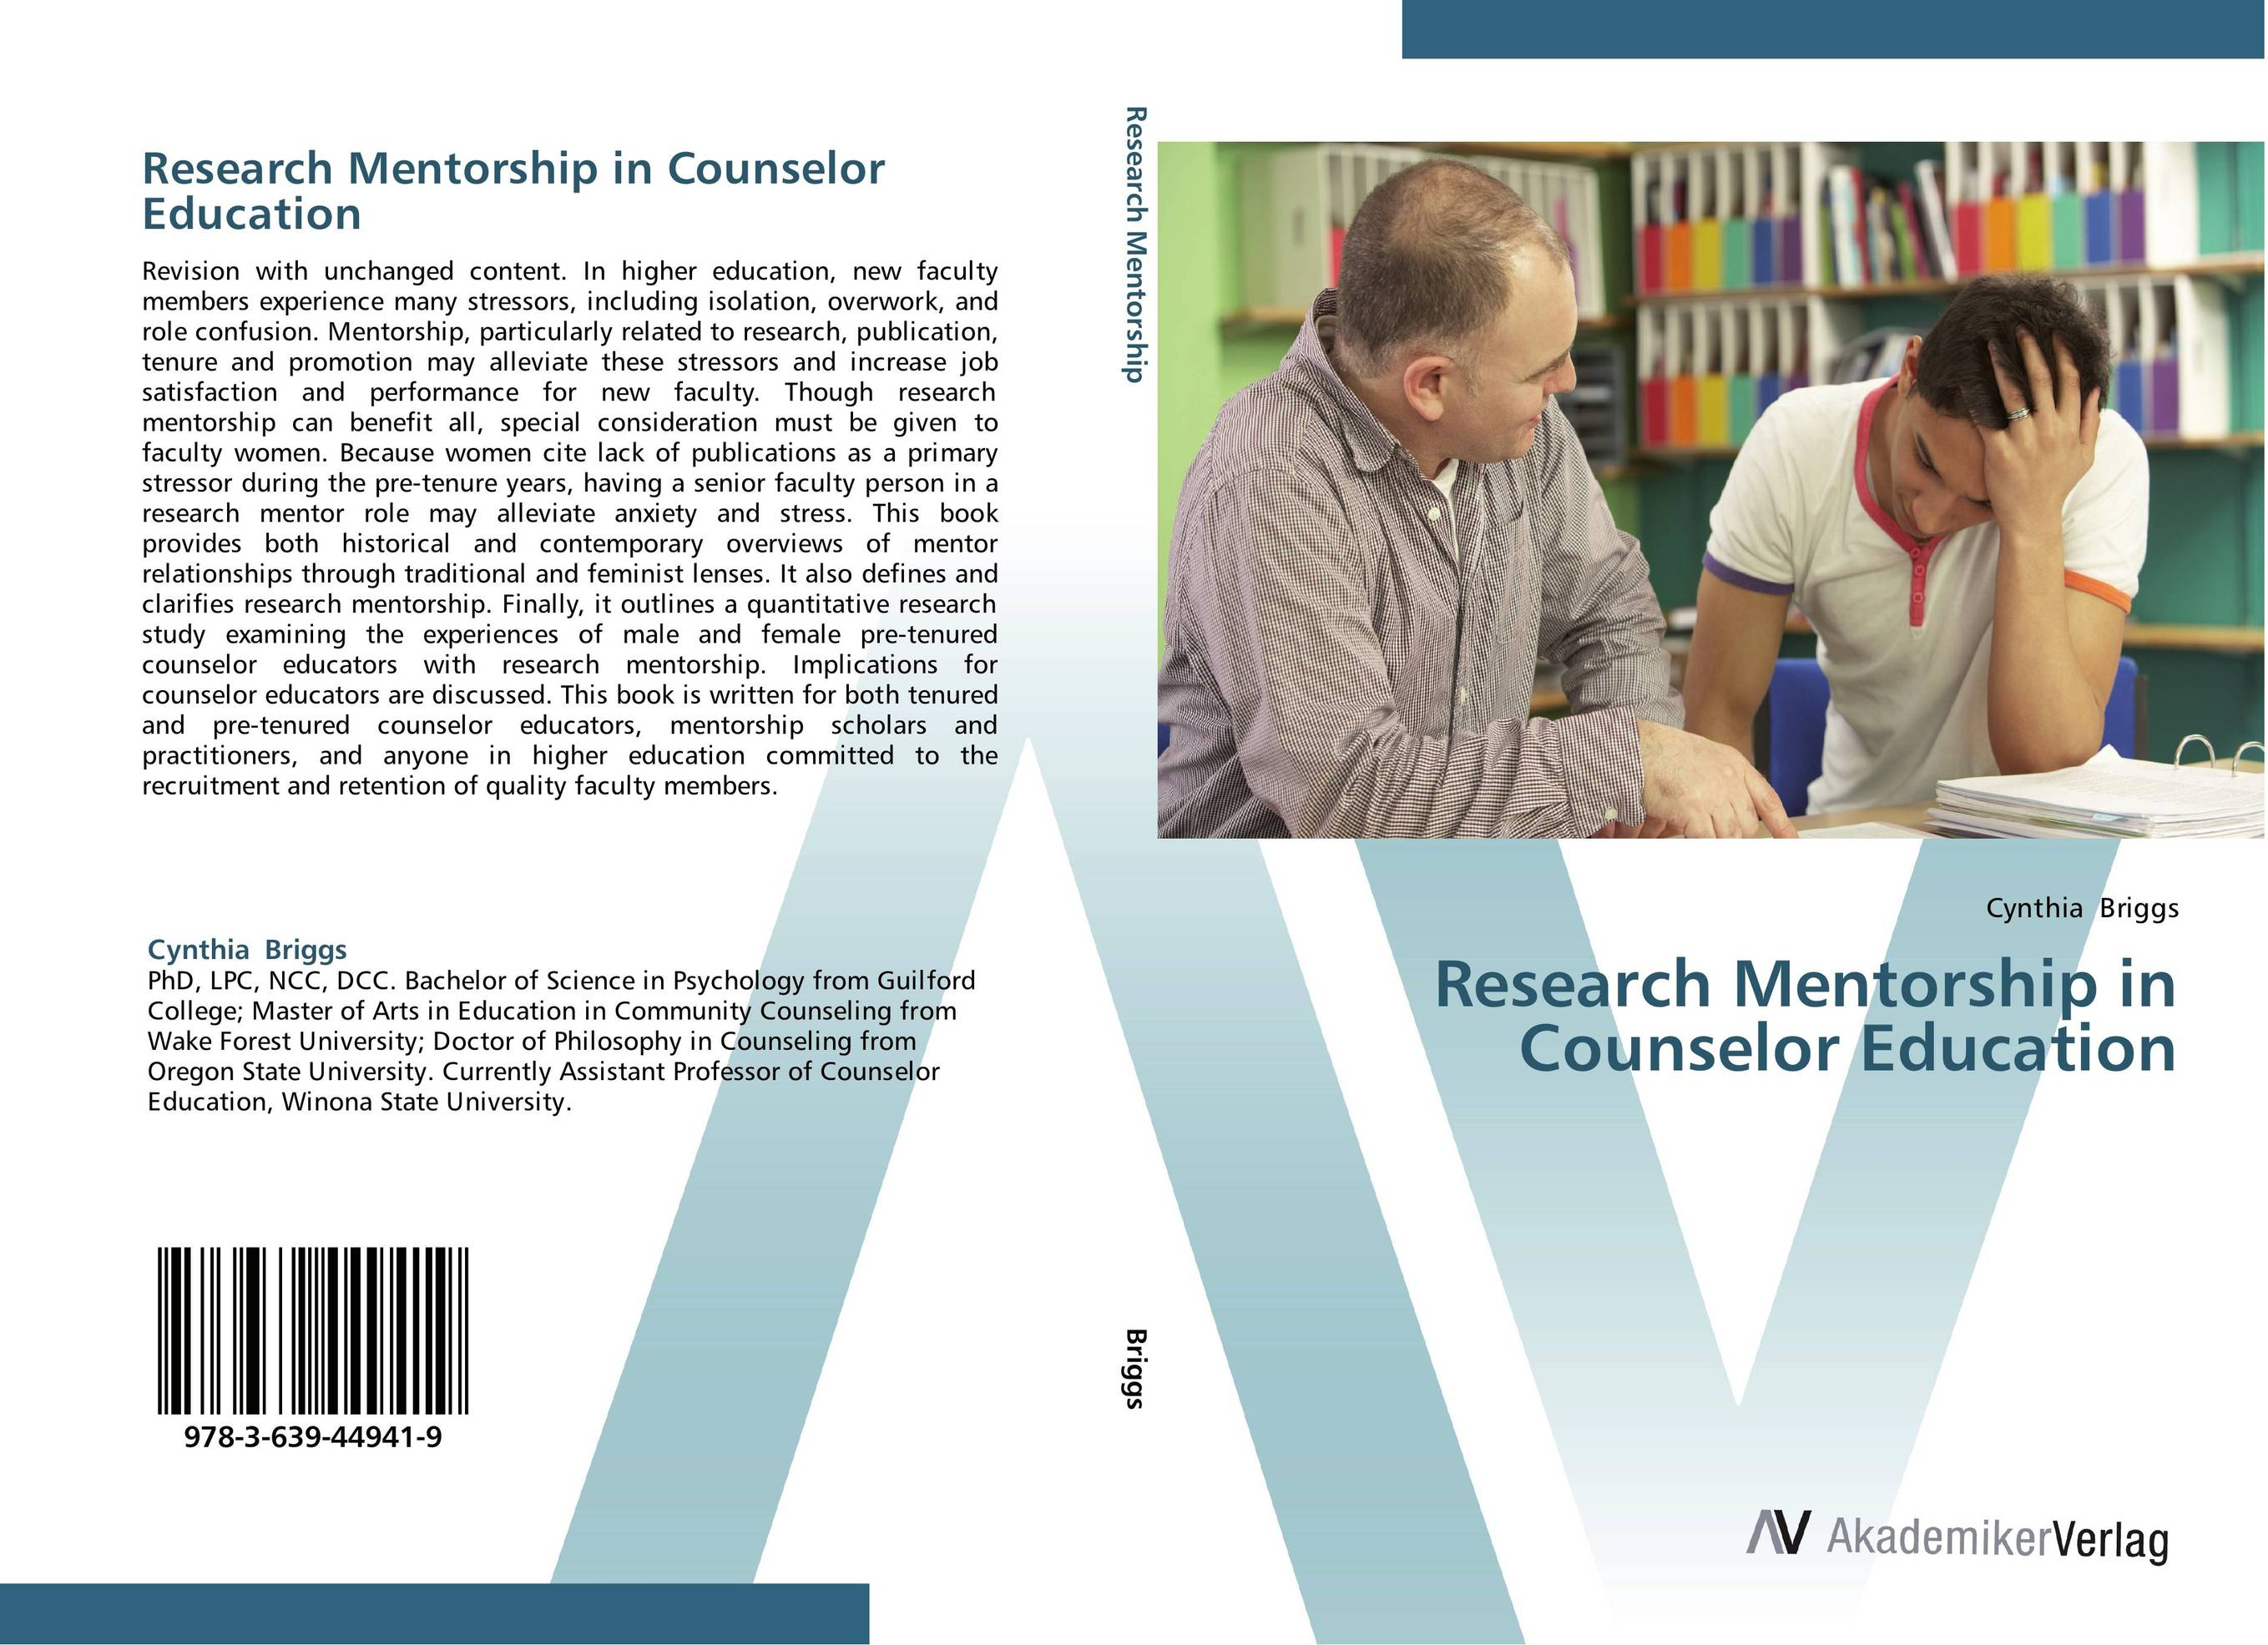 Research Mentorship in Counselor Education cite marilou